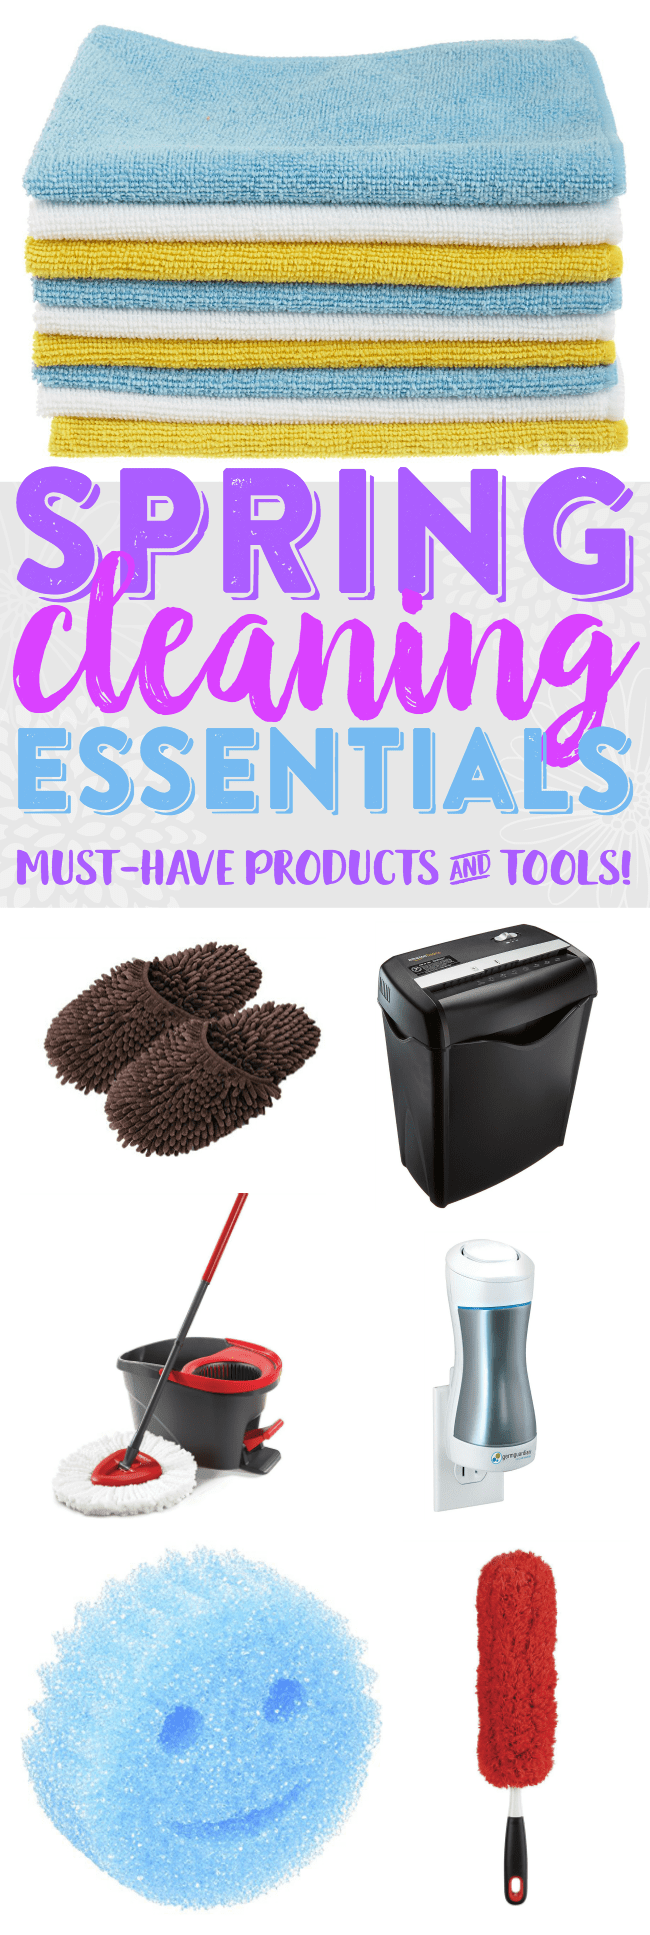 20 Spring Cleaning Essentials - These must-have products and tools will help you get your home looking its best for Spring!